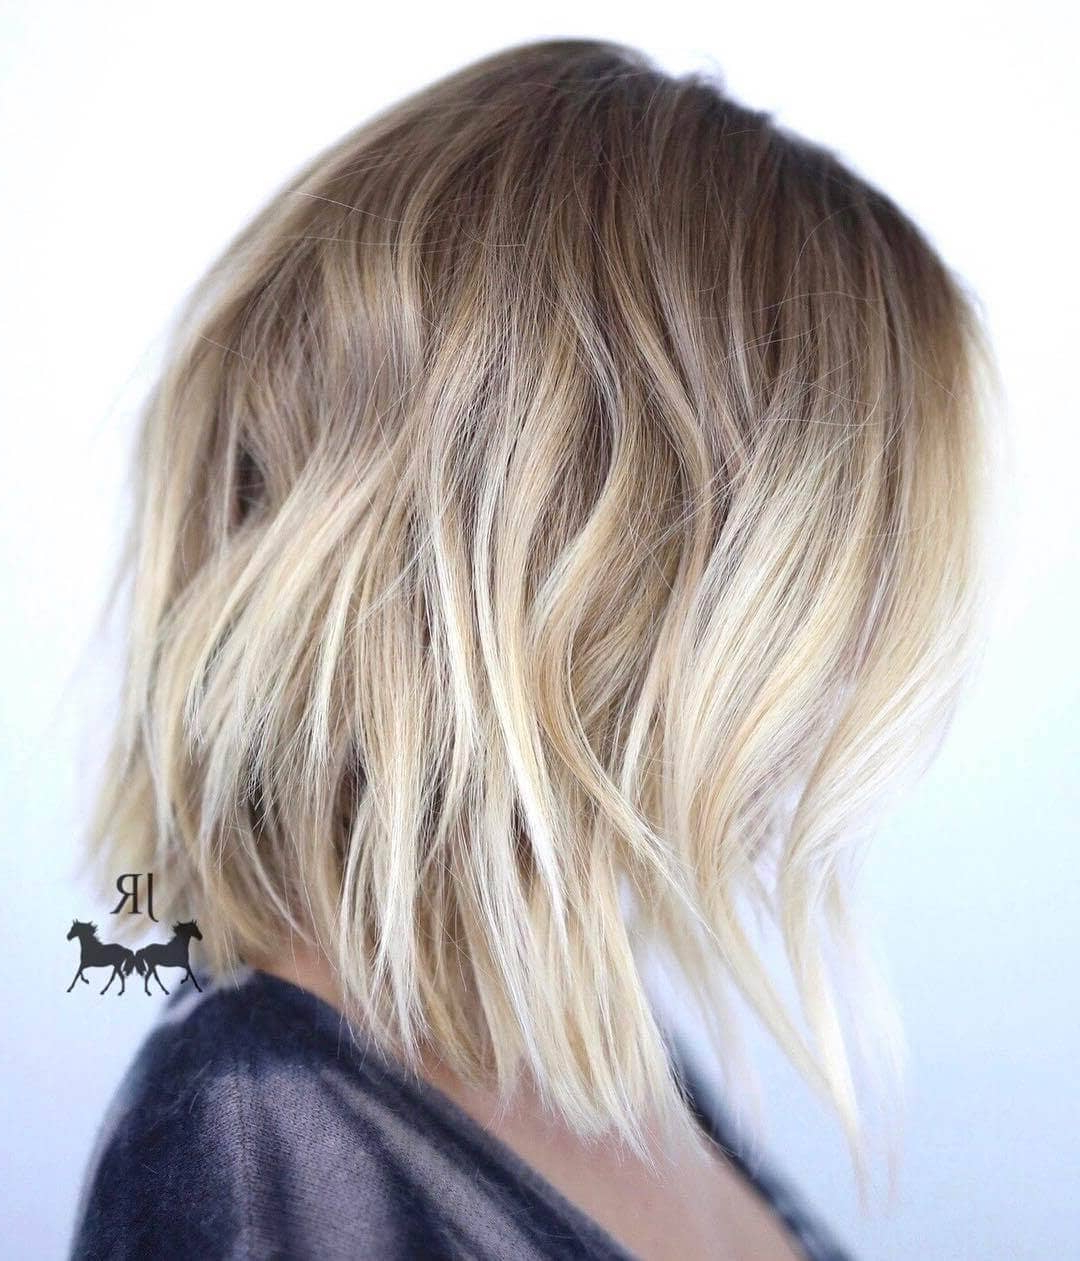 50 Fresh Short Blonde Hair Ideas To Update Your Style In 2018 Inside Short Blonde Hair With Bangs (View 16 of 25)